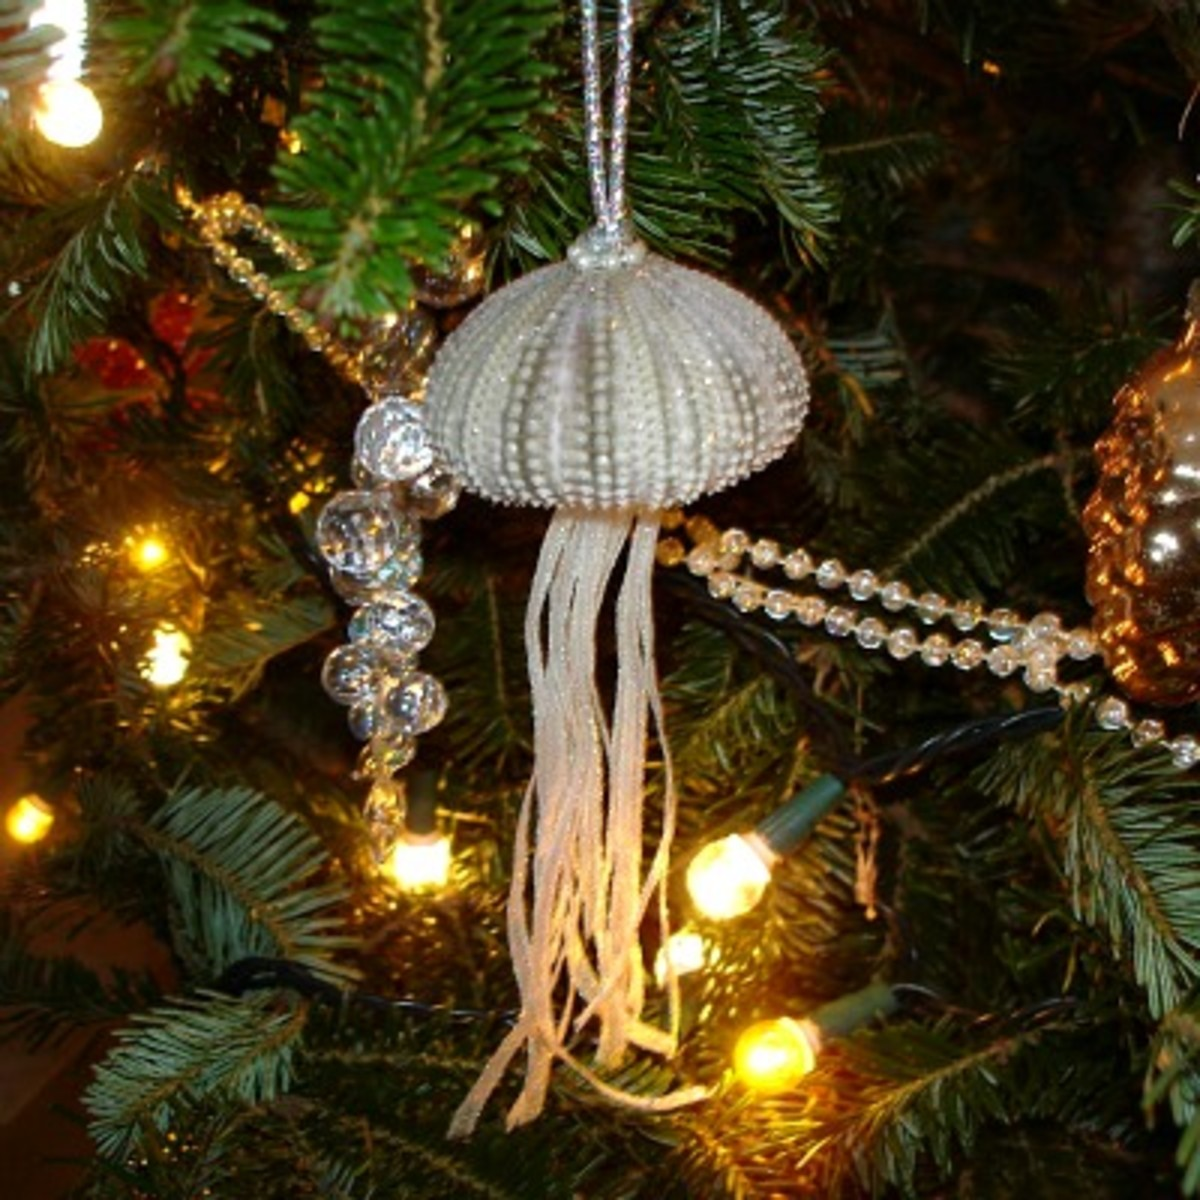 http://aquasunday.blogspot.com/2009/12/sea-urchin-ornament-2.html